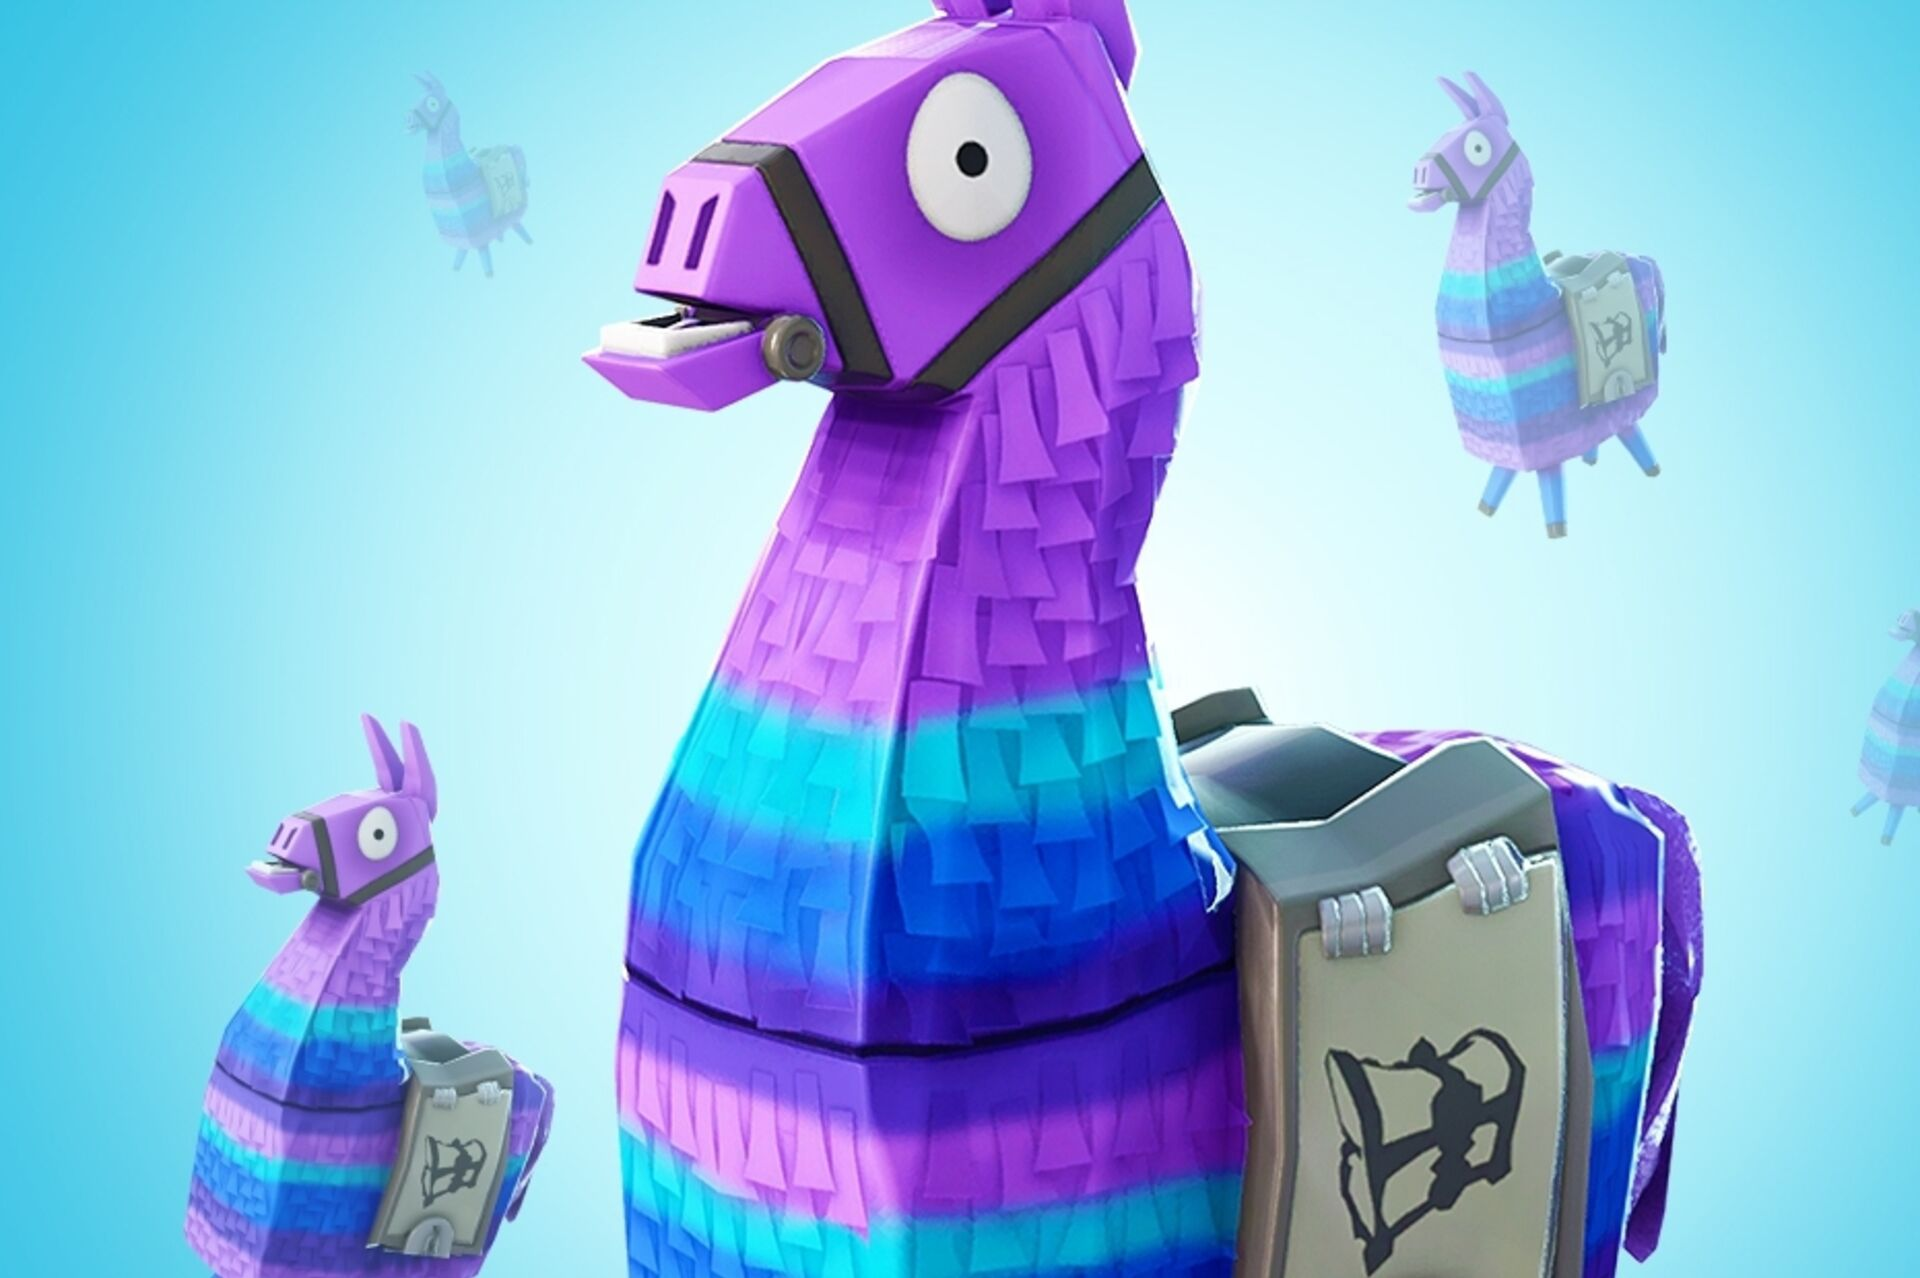 fortnite s latest update introduces generous llama piñatas remote